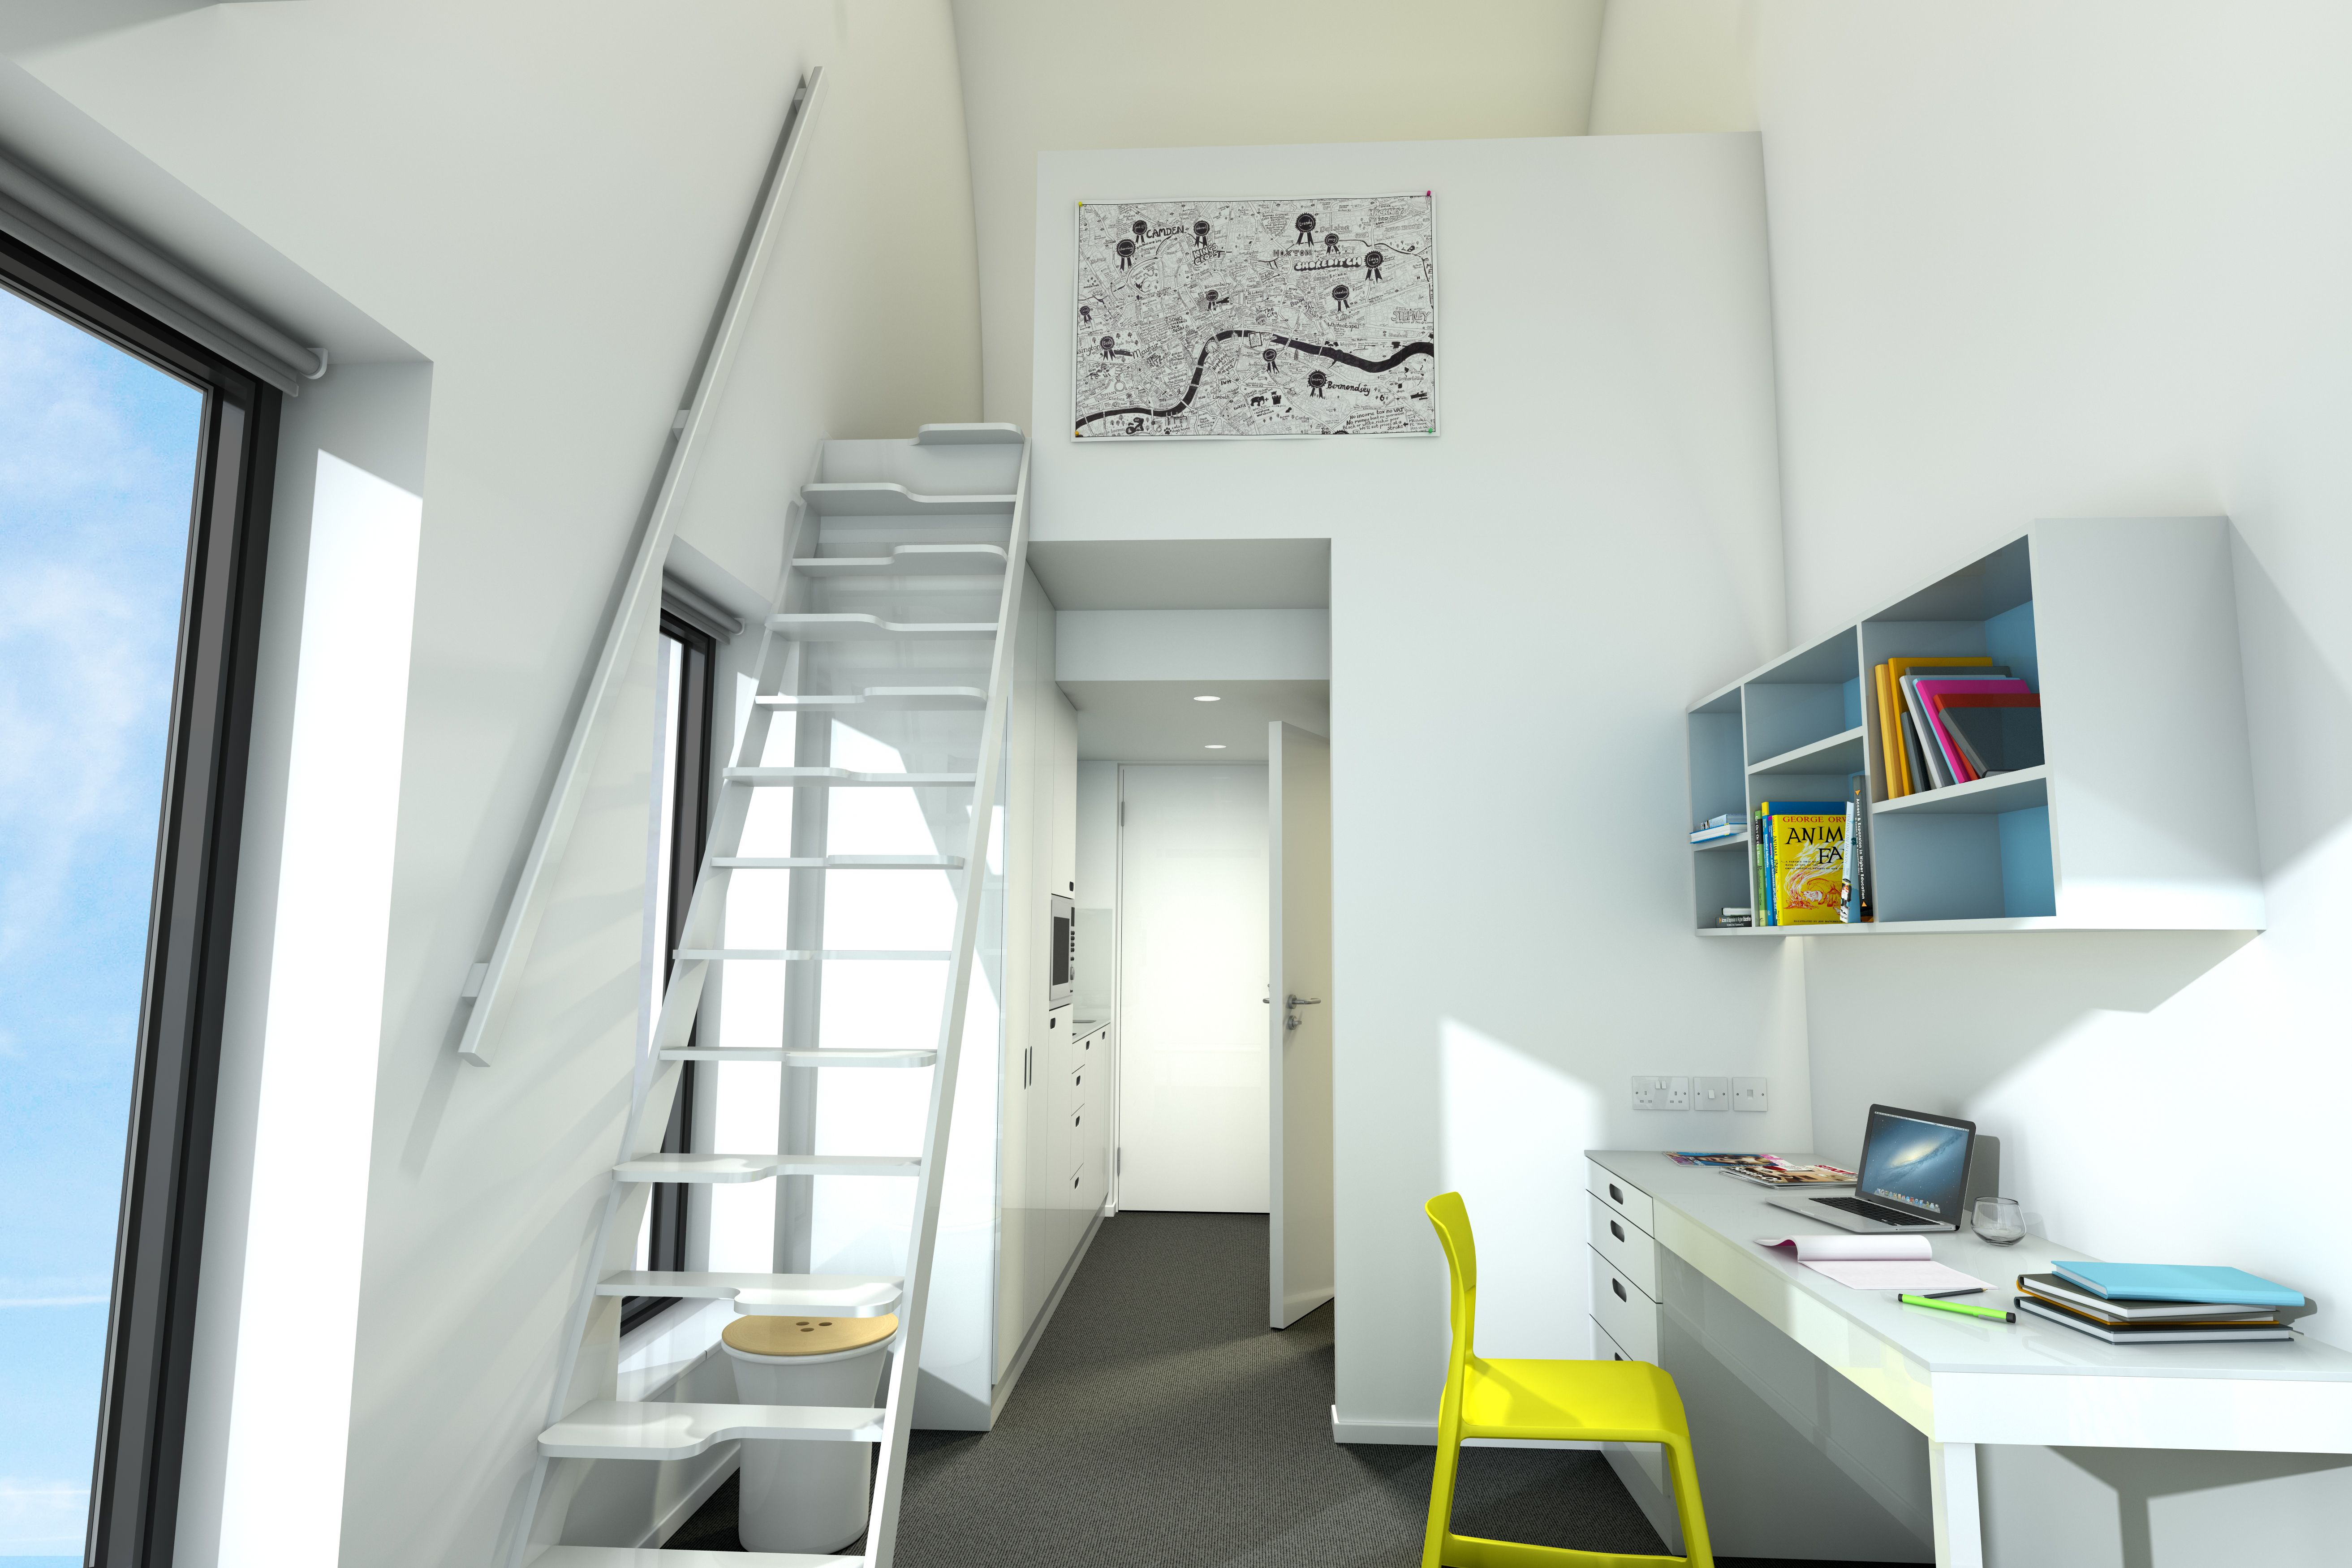 scape greenwich studio duplex a student housing pinterest studio small spaces and. Black Bedroom Furniture Sets. Home Design Ideas